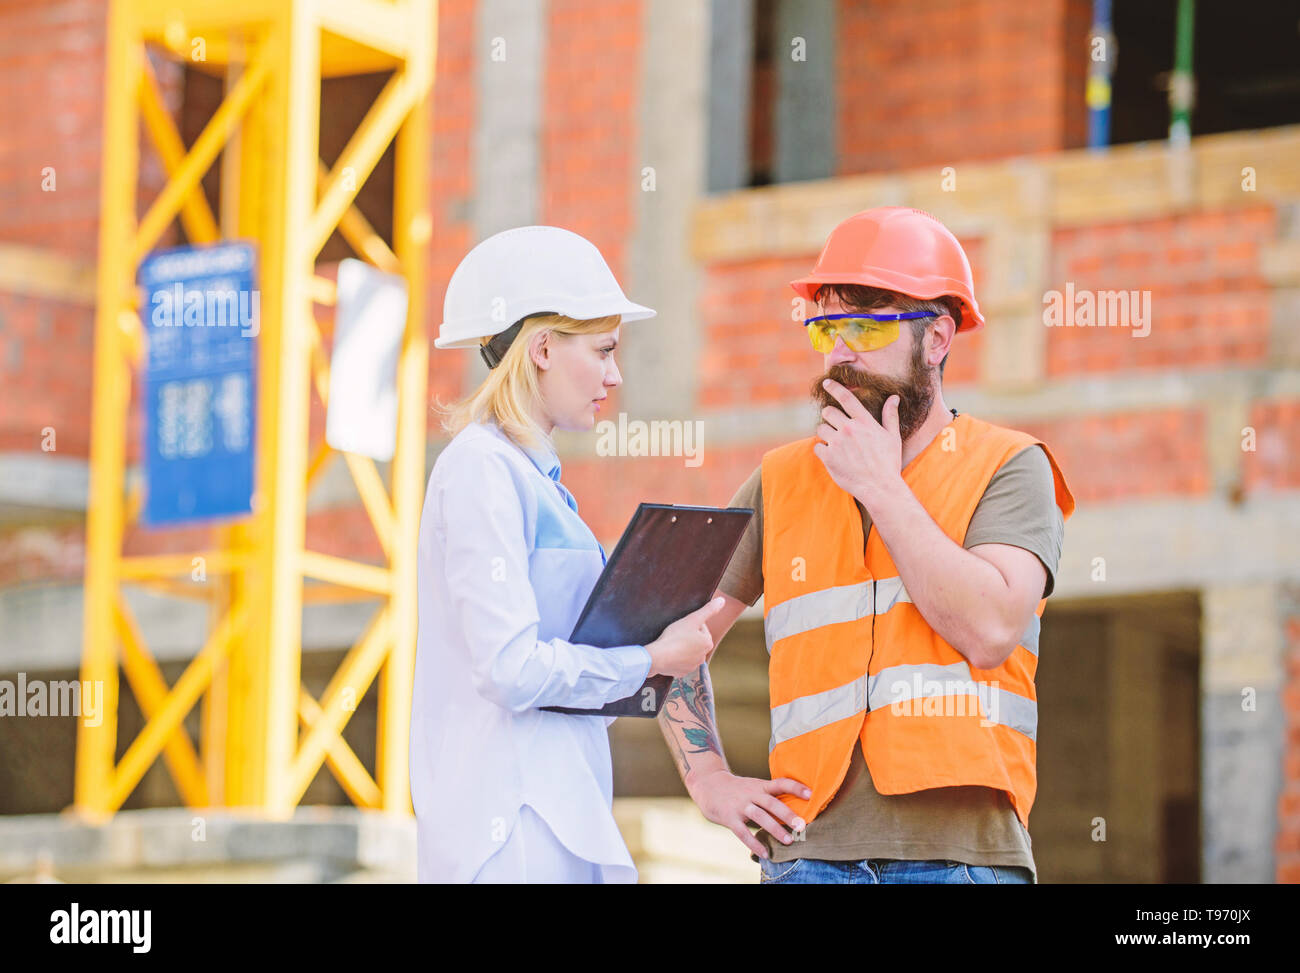 Construction project management. Building industrial project. Construction industry concept. Discuss progress project. Woman engineer and bearded brutal builder discuss construction progress. - Stock Image